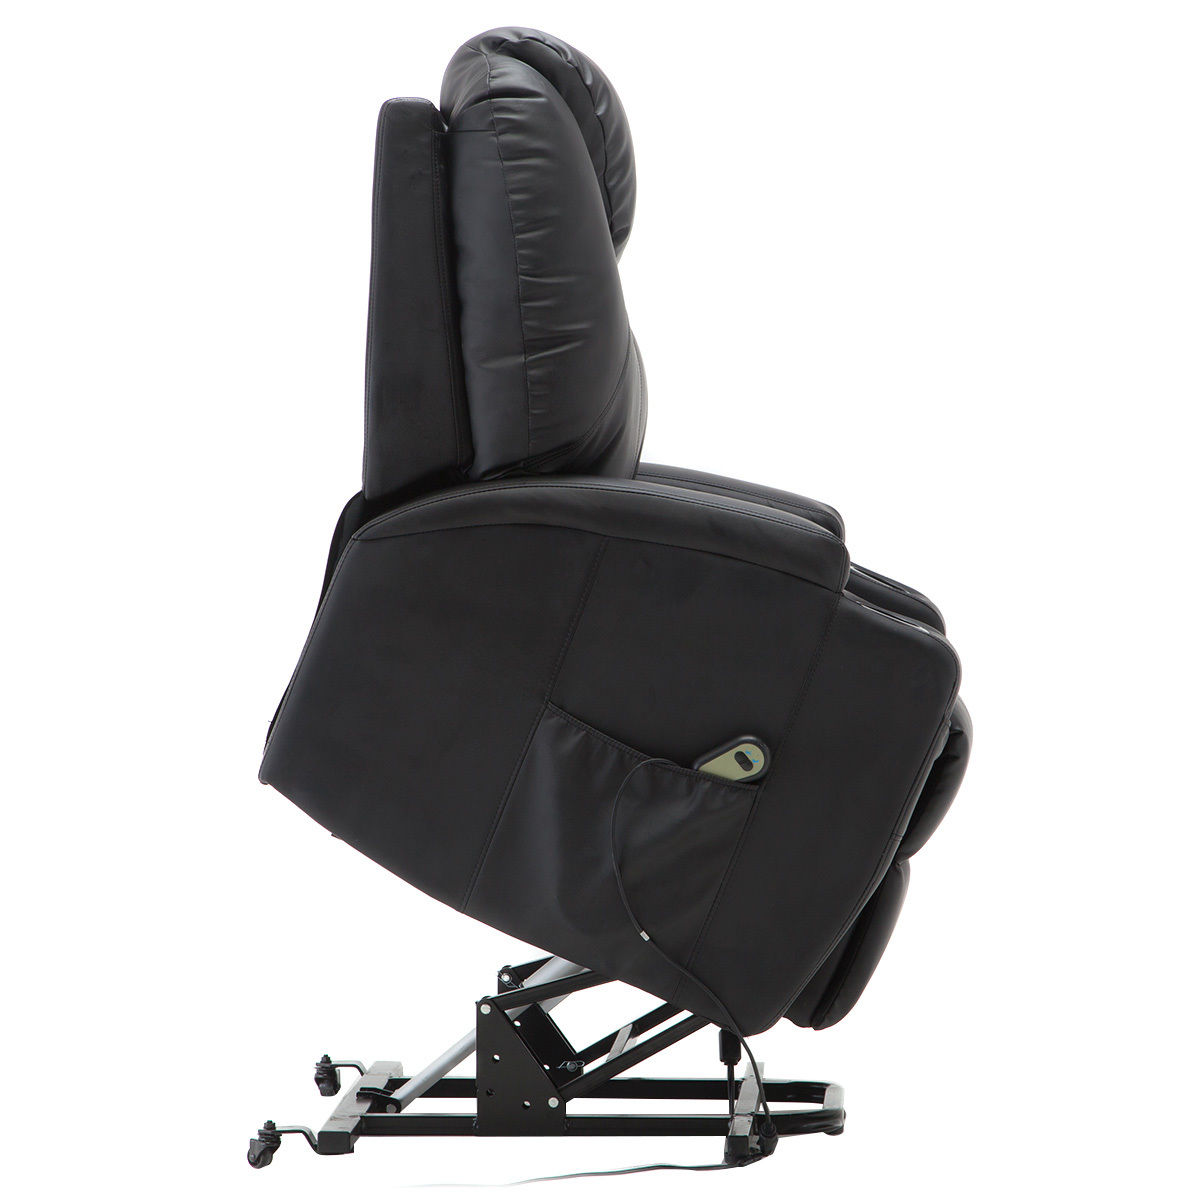 Pleasing Us 345 99 Giantex Electric Lift Power Recliner Chair Heated Massage Sofa Lounge With Remote Control Sofa Chairs Modern Recliner Hw53991 On Gamerscity Chair Design For Home Gamerscityorg